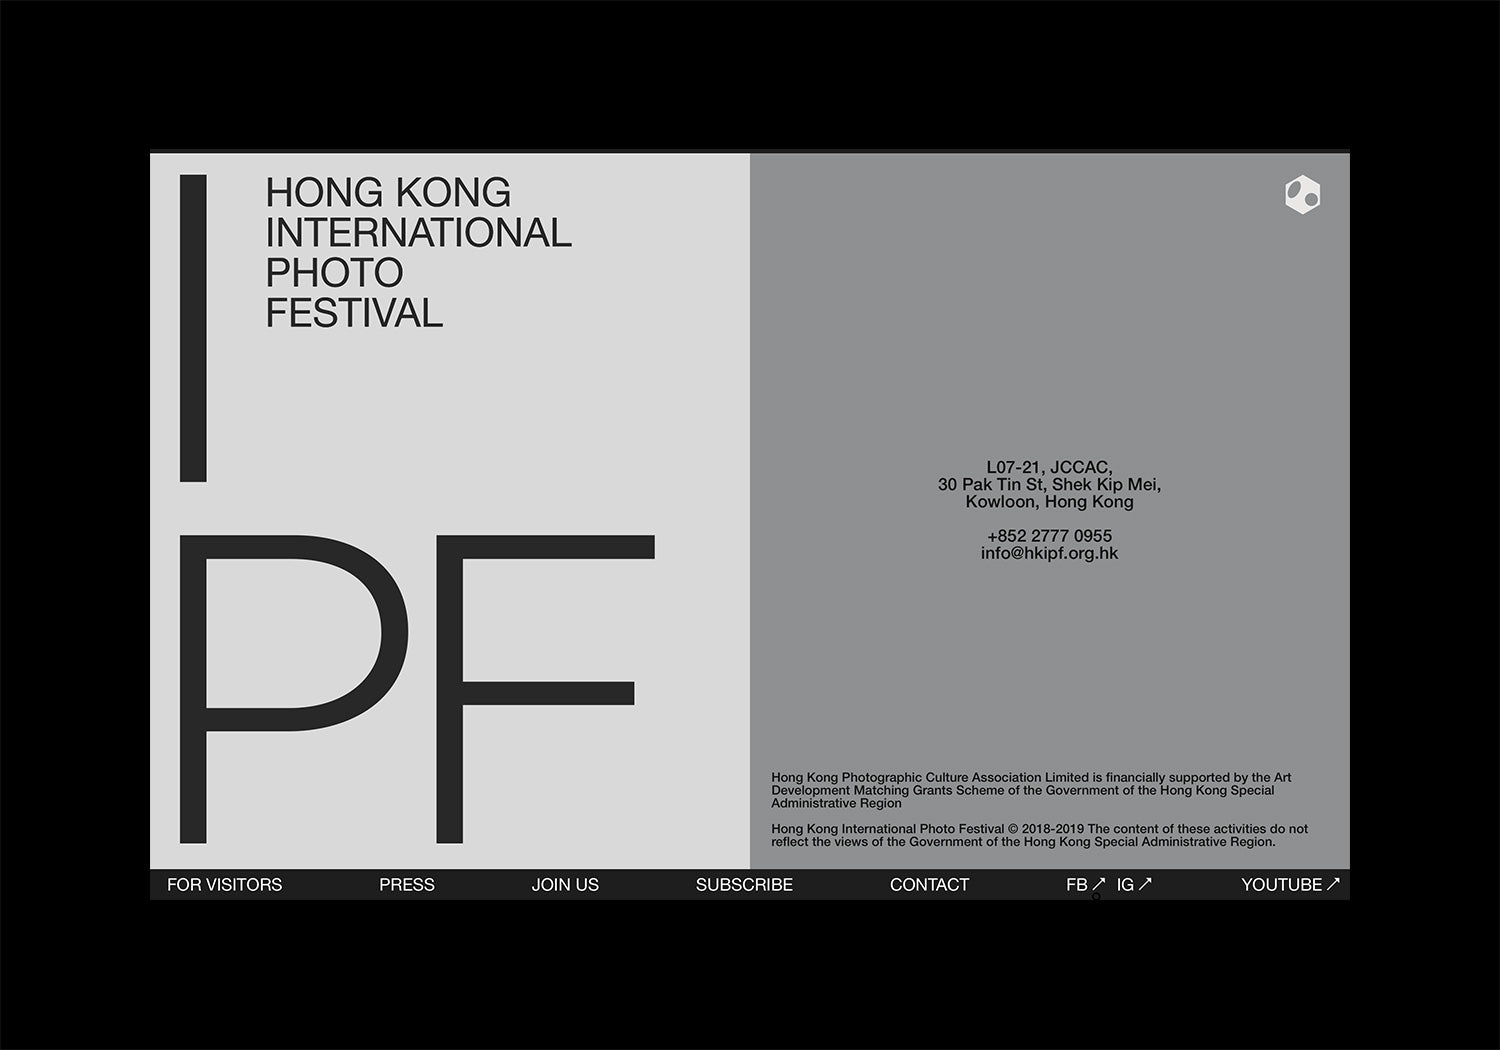 Studiowmw: Hong Kong International Photo Festival